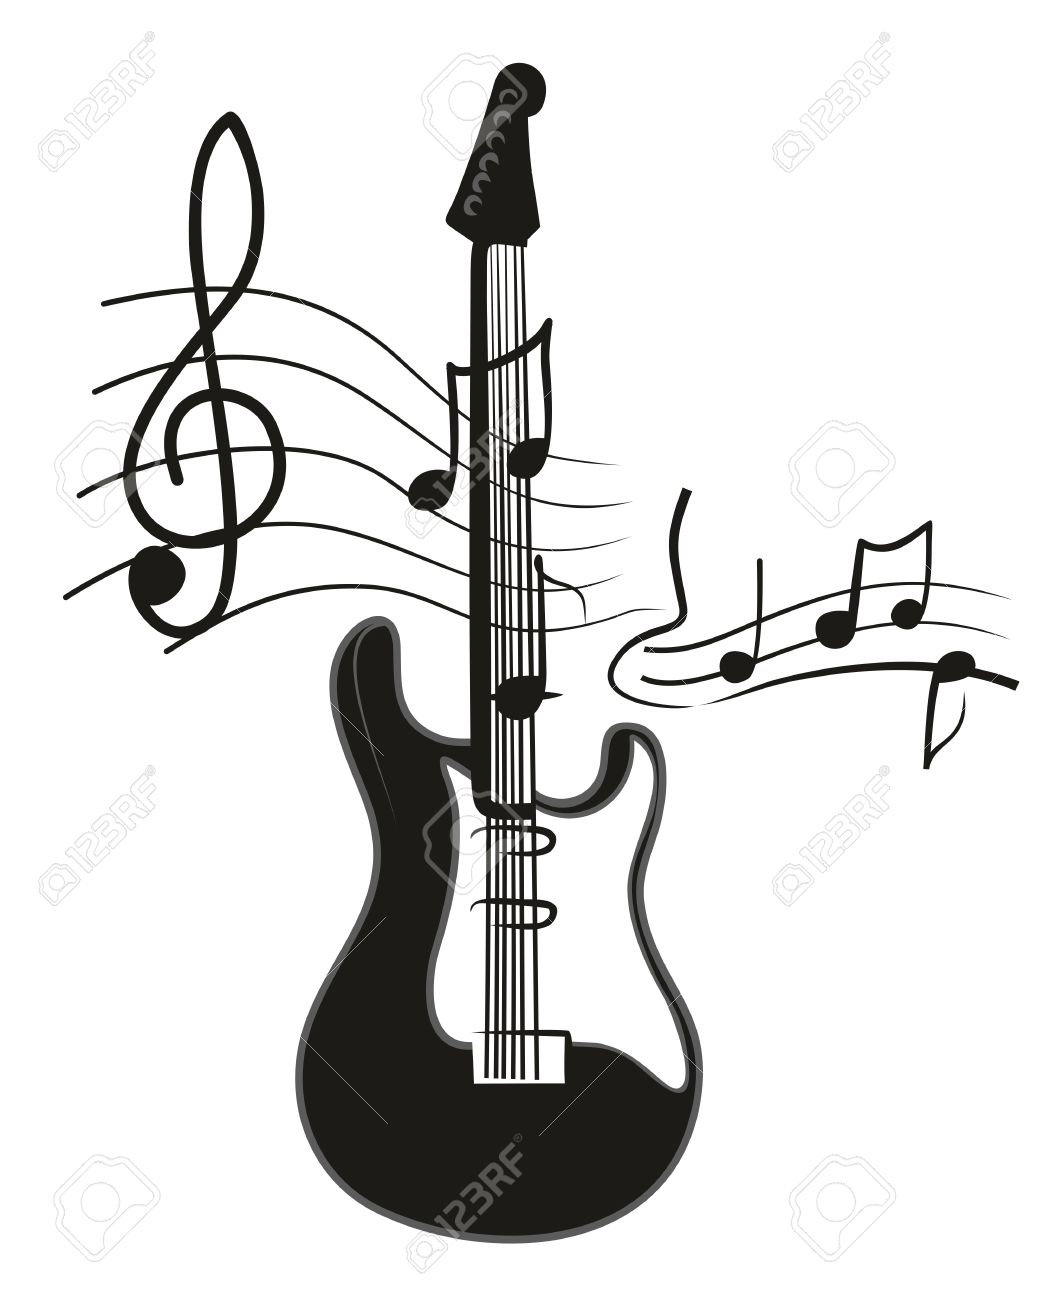 1063x1300 Drawing Guitar Stock Photos. Royalty Free Business Images